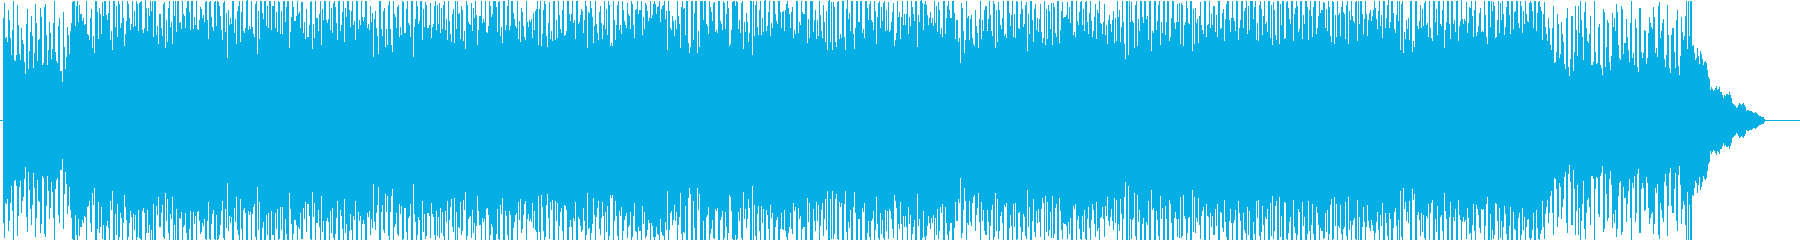 Corporate Upbeat Motivational's reproduced waveform